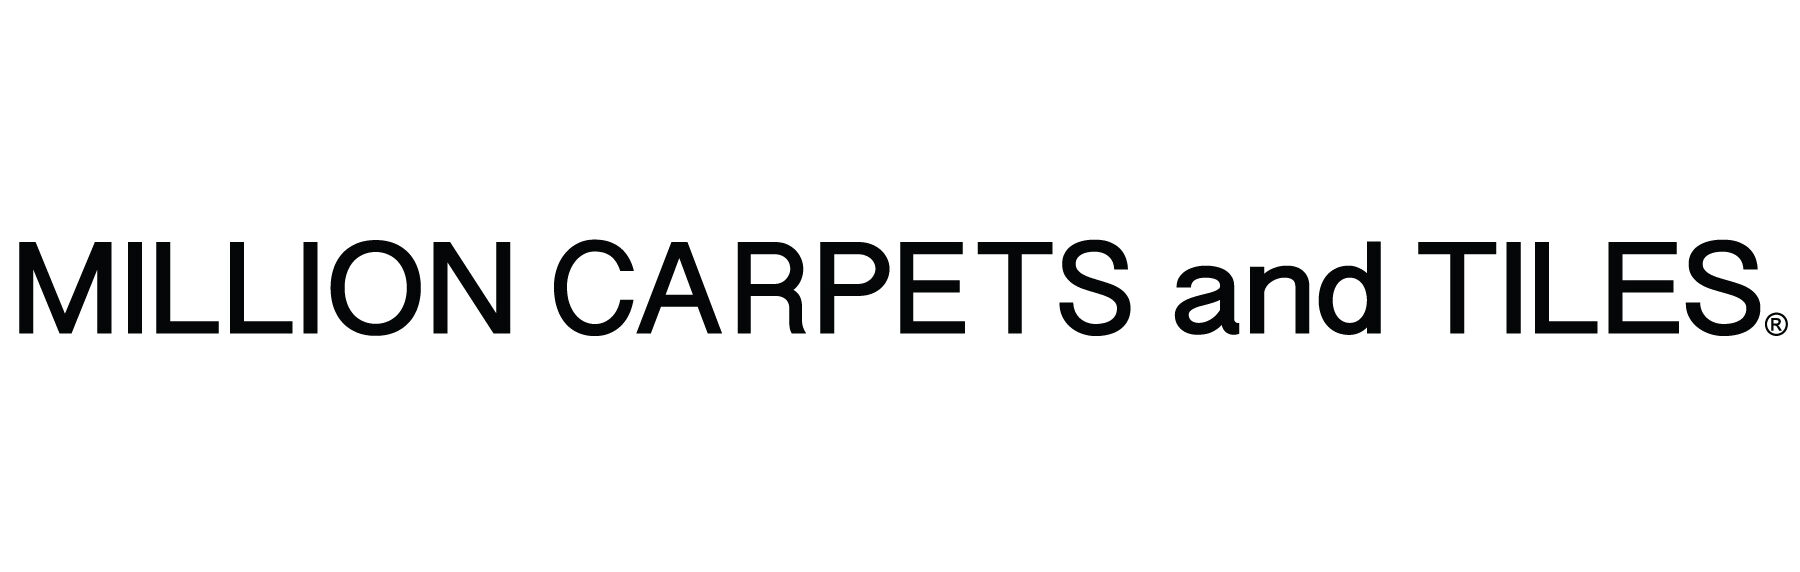 Million carpets and Tiles-02